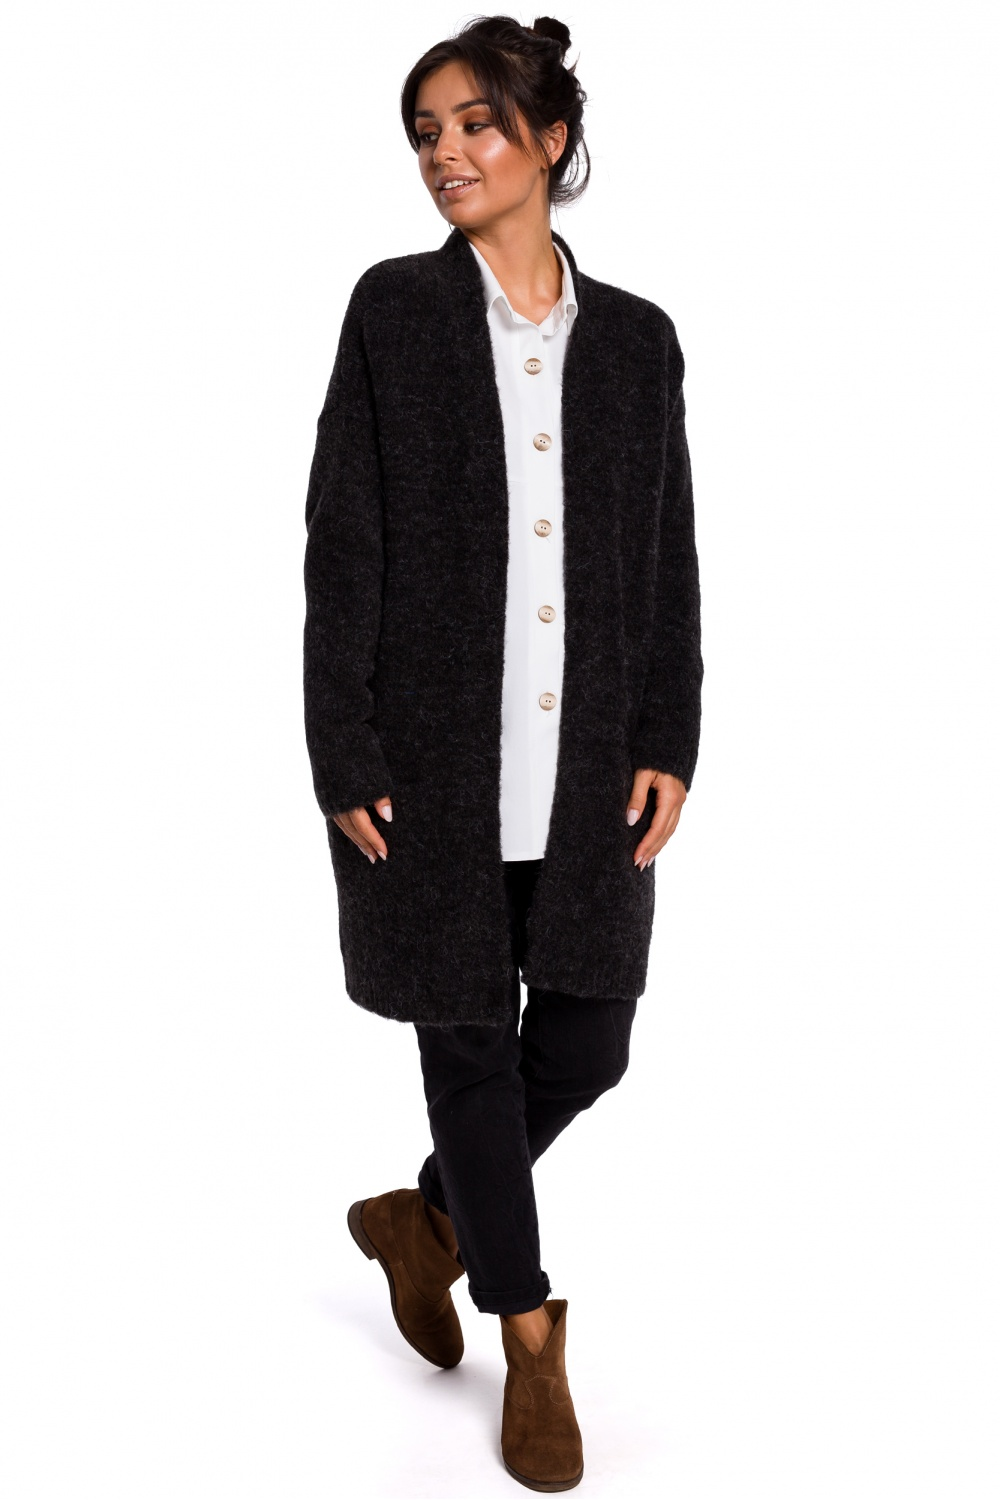 Cardigan model 134735 BE Knit